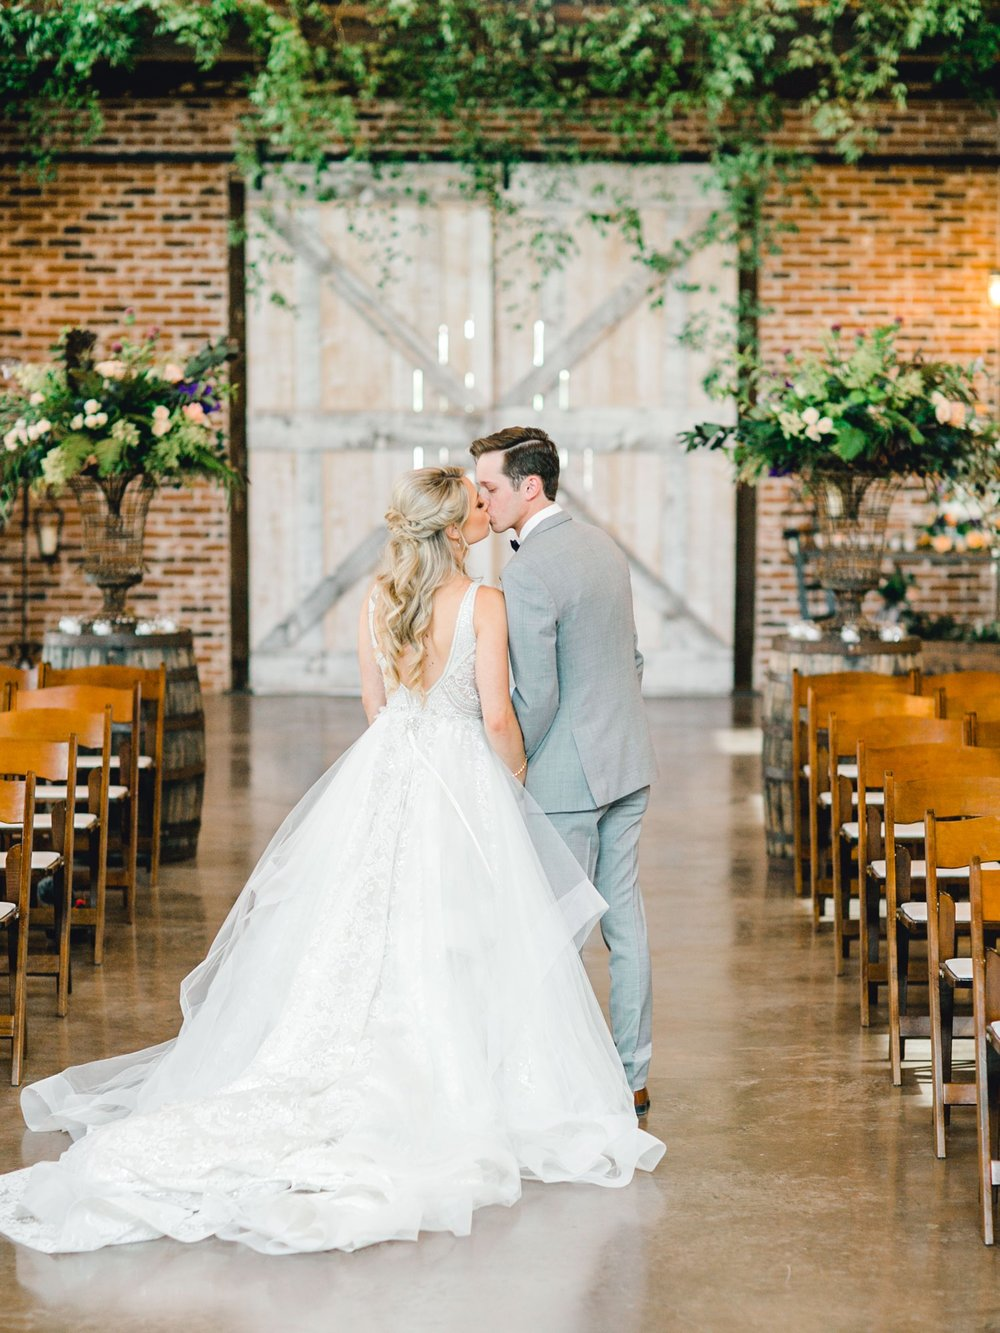 KAITLYN_AND_ZACHARY_HUNT_ALLEEJ_LUBBOCK_WEDDING_PHOTOGRAPHER_EBERLEY_BROOKS_EVENTS_0059.jpg